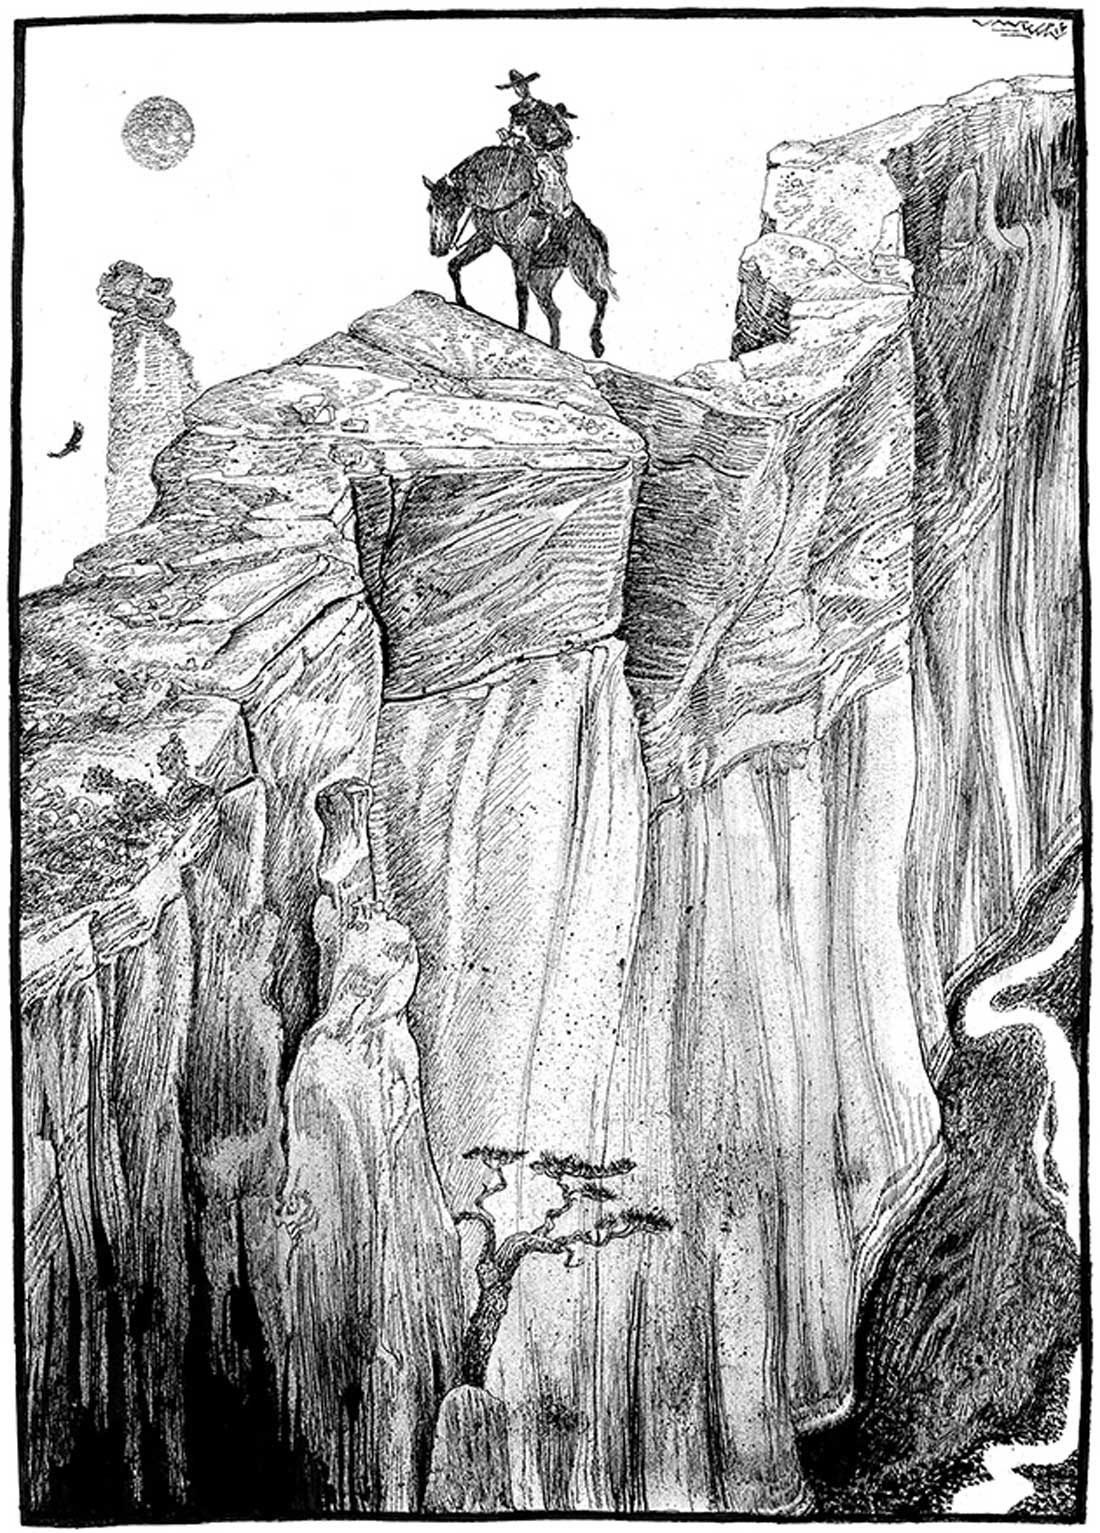 In a climactic scene in The Devil's Backbone, Papa and his protector traverse the titular rocky ledge.